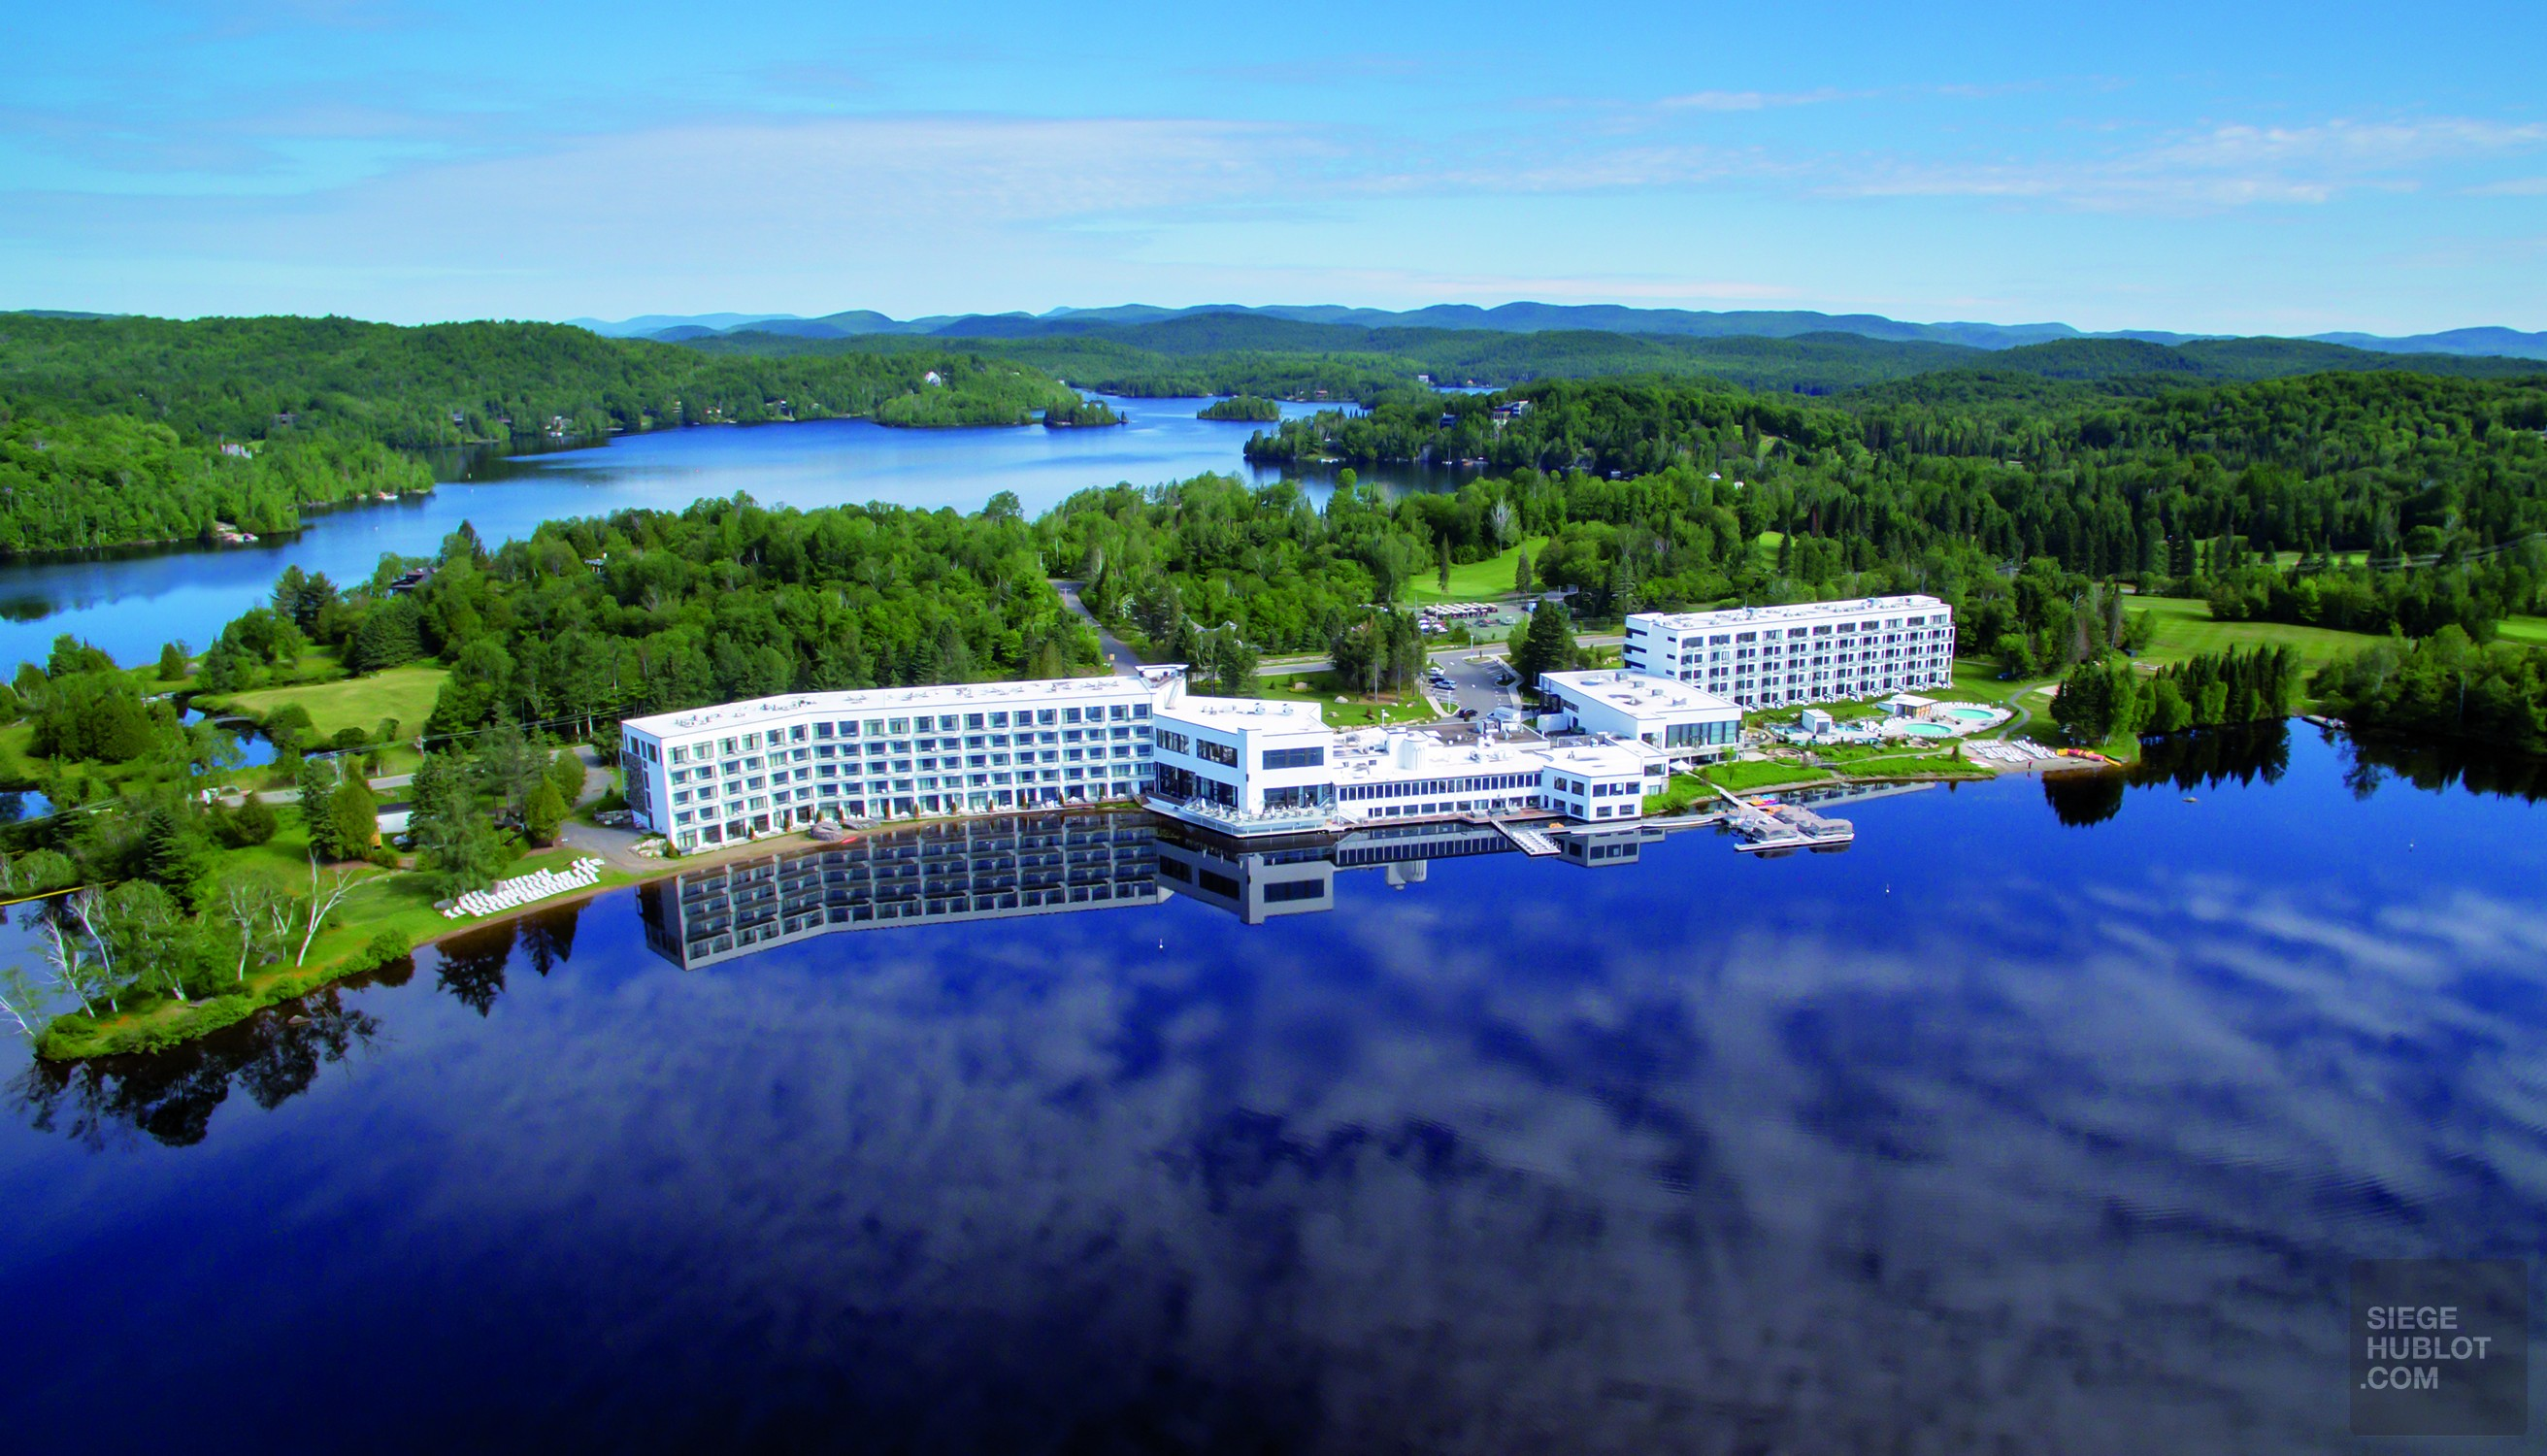 Séjour à l'Estérel Resort - rode-trip, quebec, hotels, featured, destinations, canada